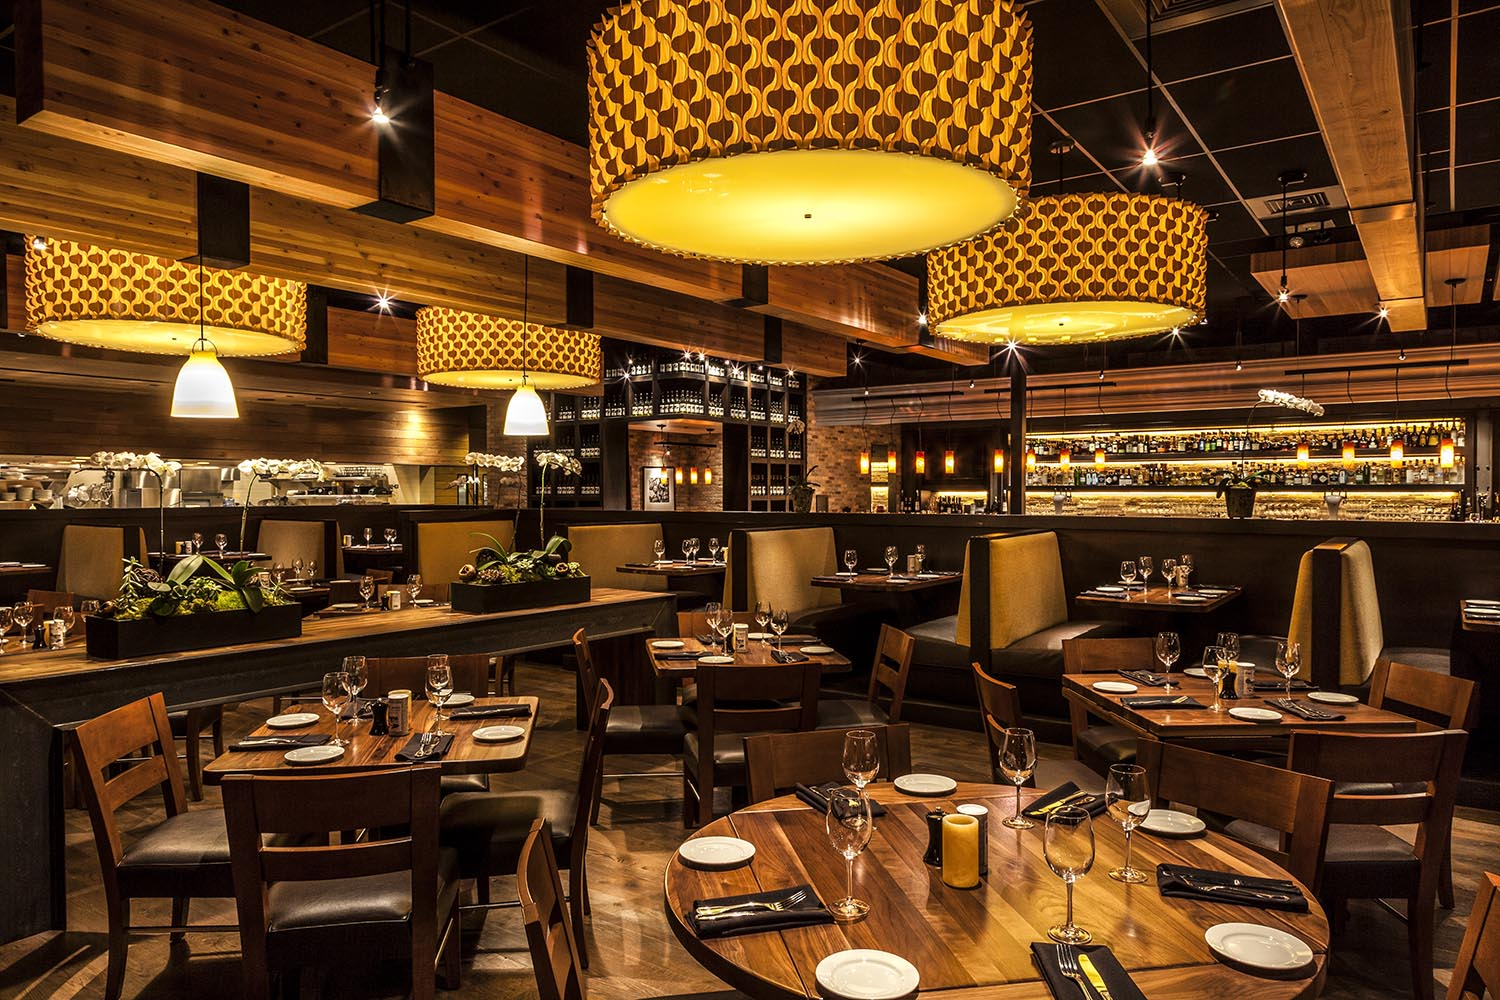 Scottsdale restaurant paul martin 39 s american grill for American cuisine restaurants